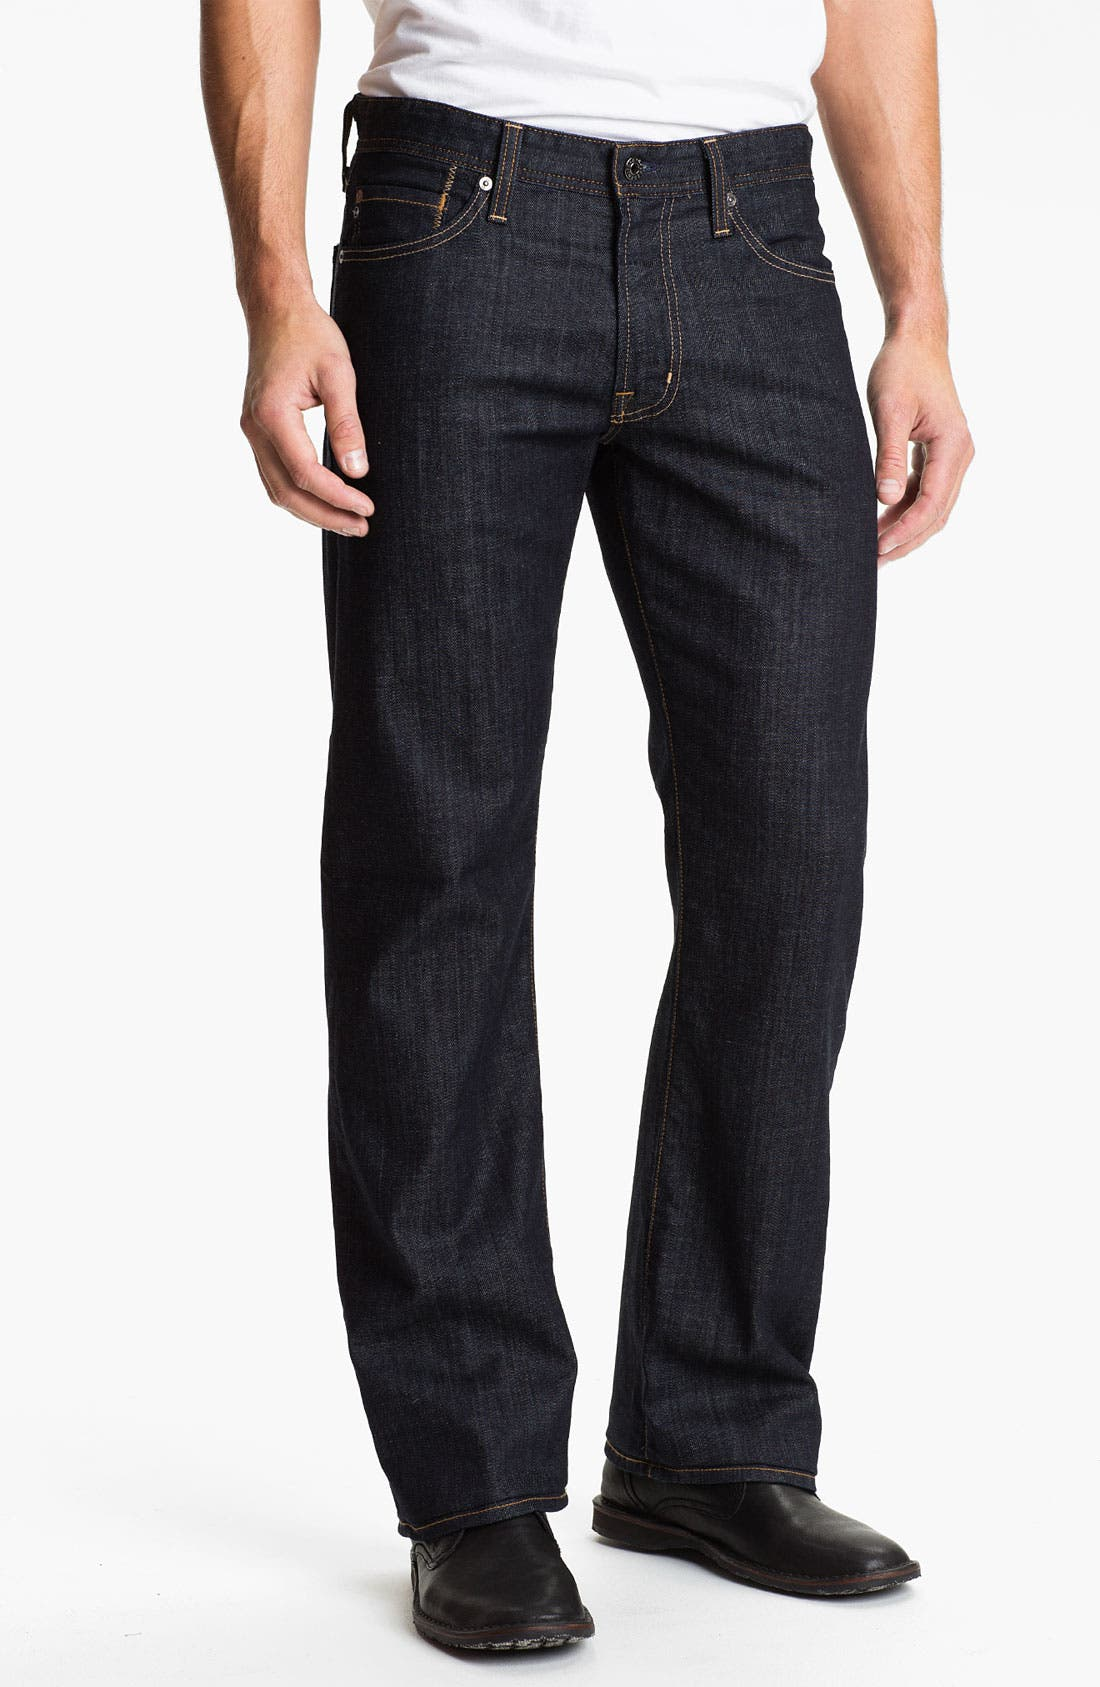 Alternate Image 1 Selected - AG Jeans 'Hero' Relaxed Fit Jeans (Munich)